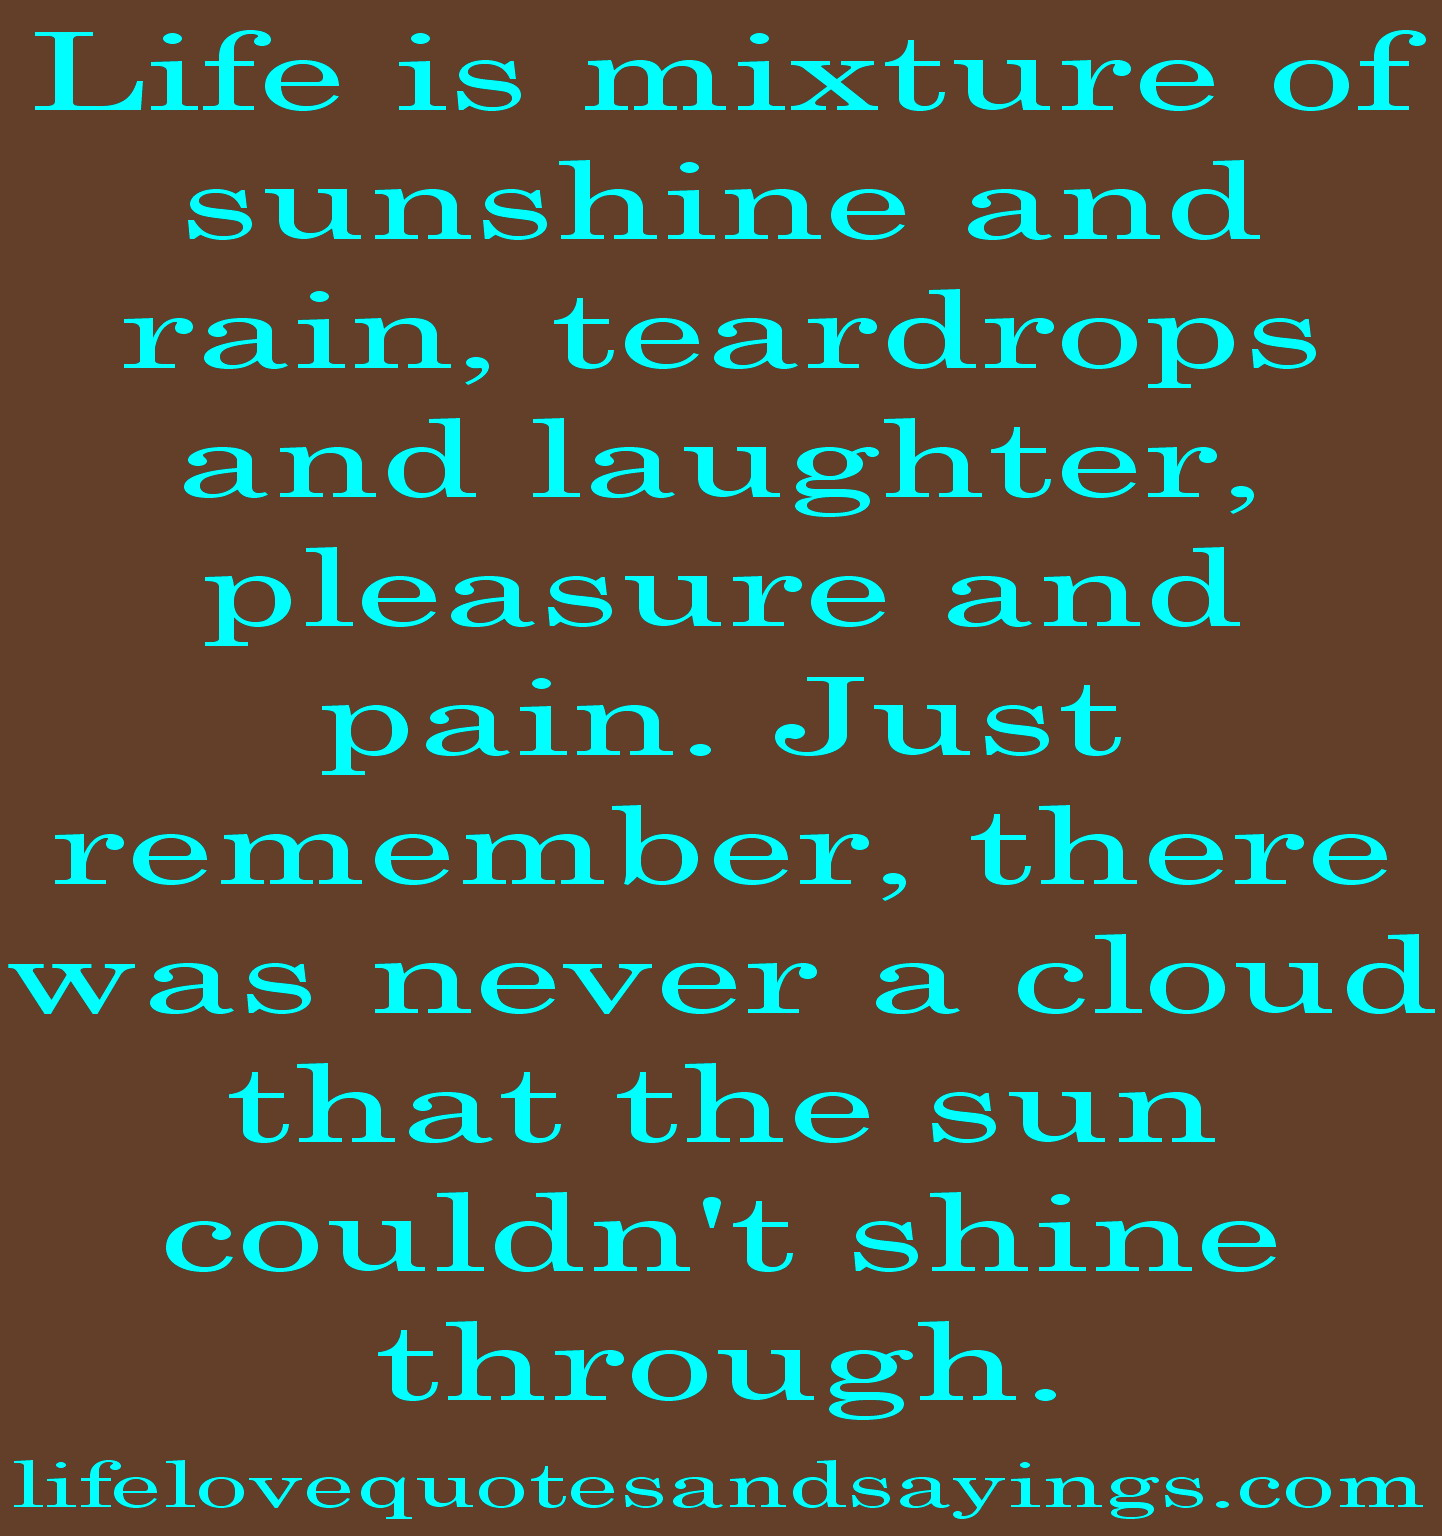 Life Sayings And Quotes Pictures: Sun Quotes And Sayings. QuotesGram